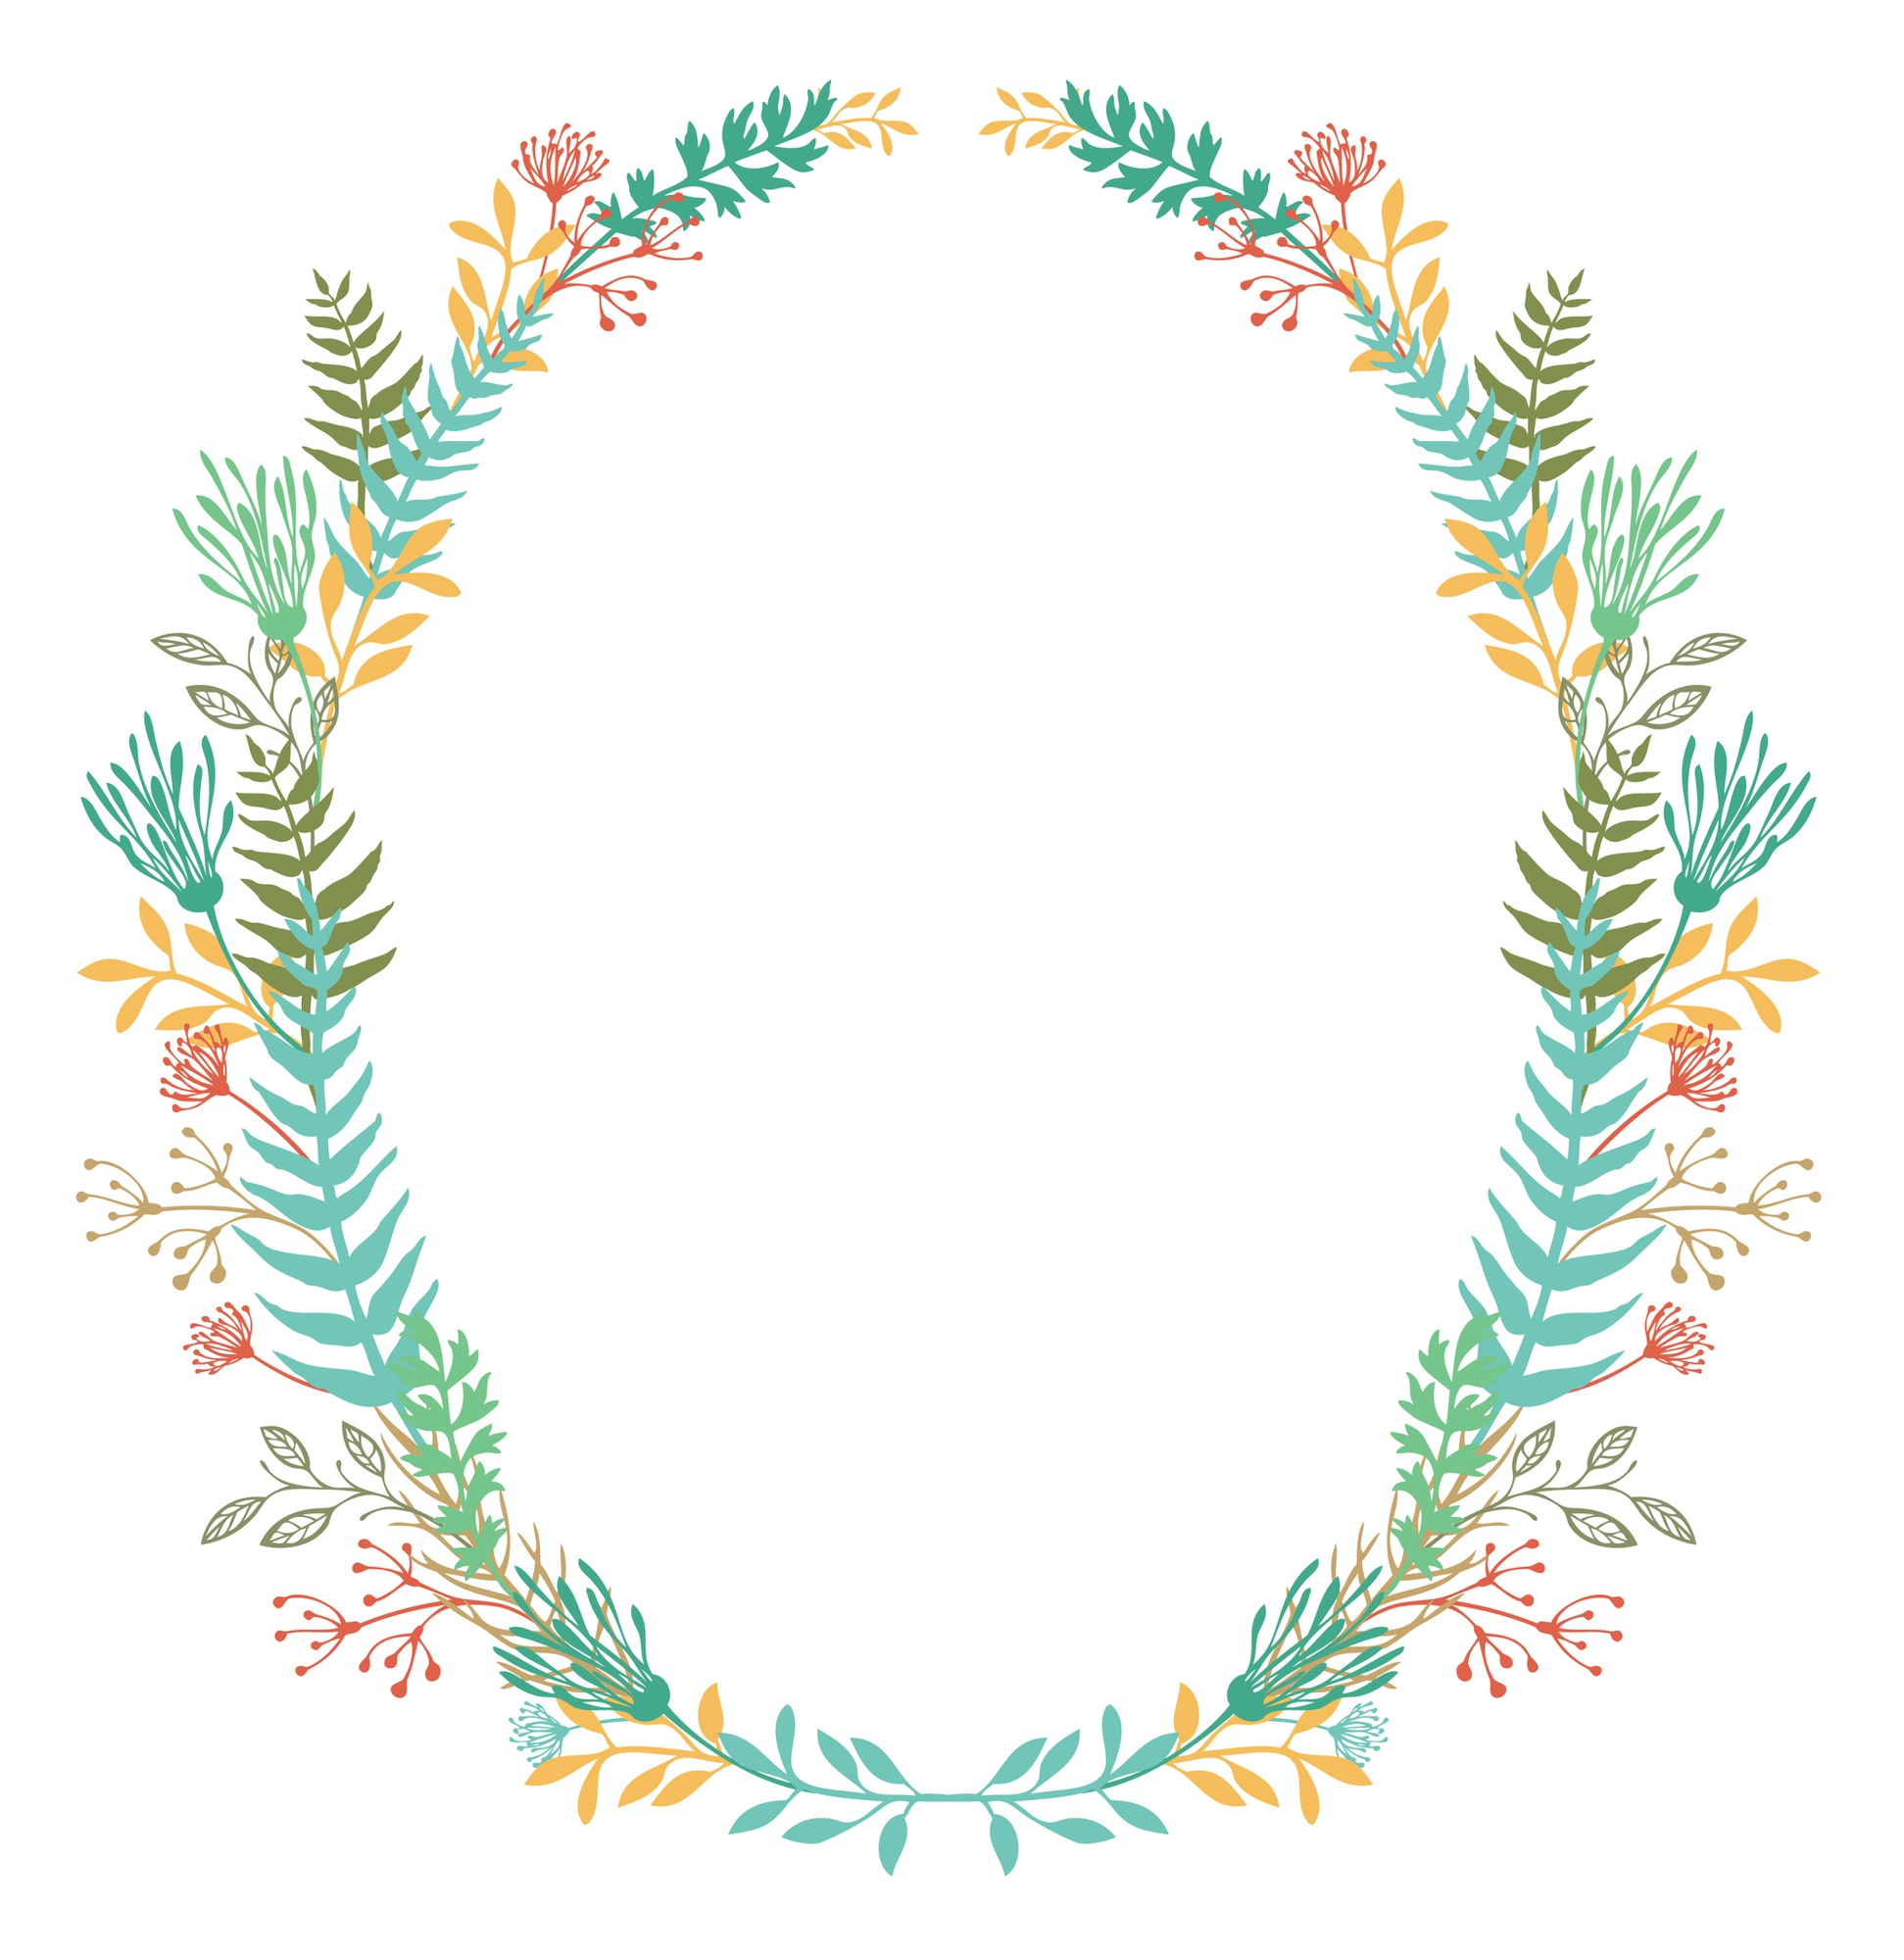 Card with frame of flowers and ferns